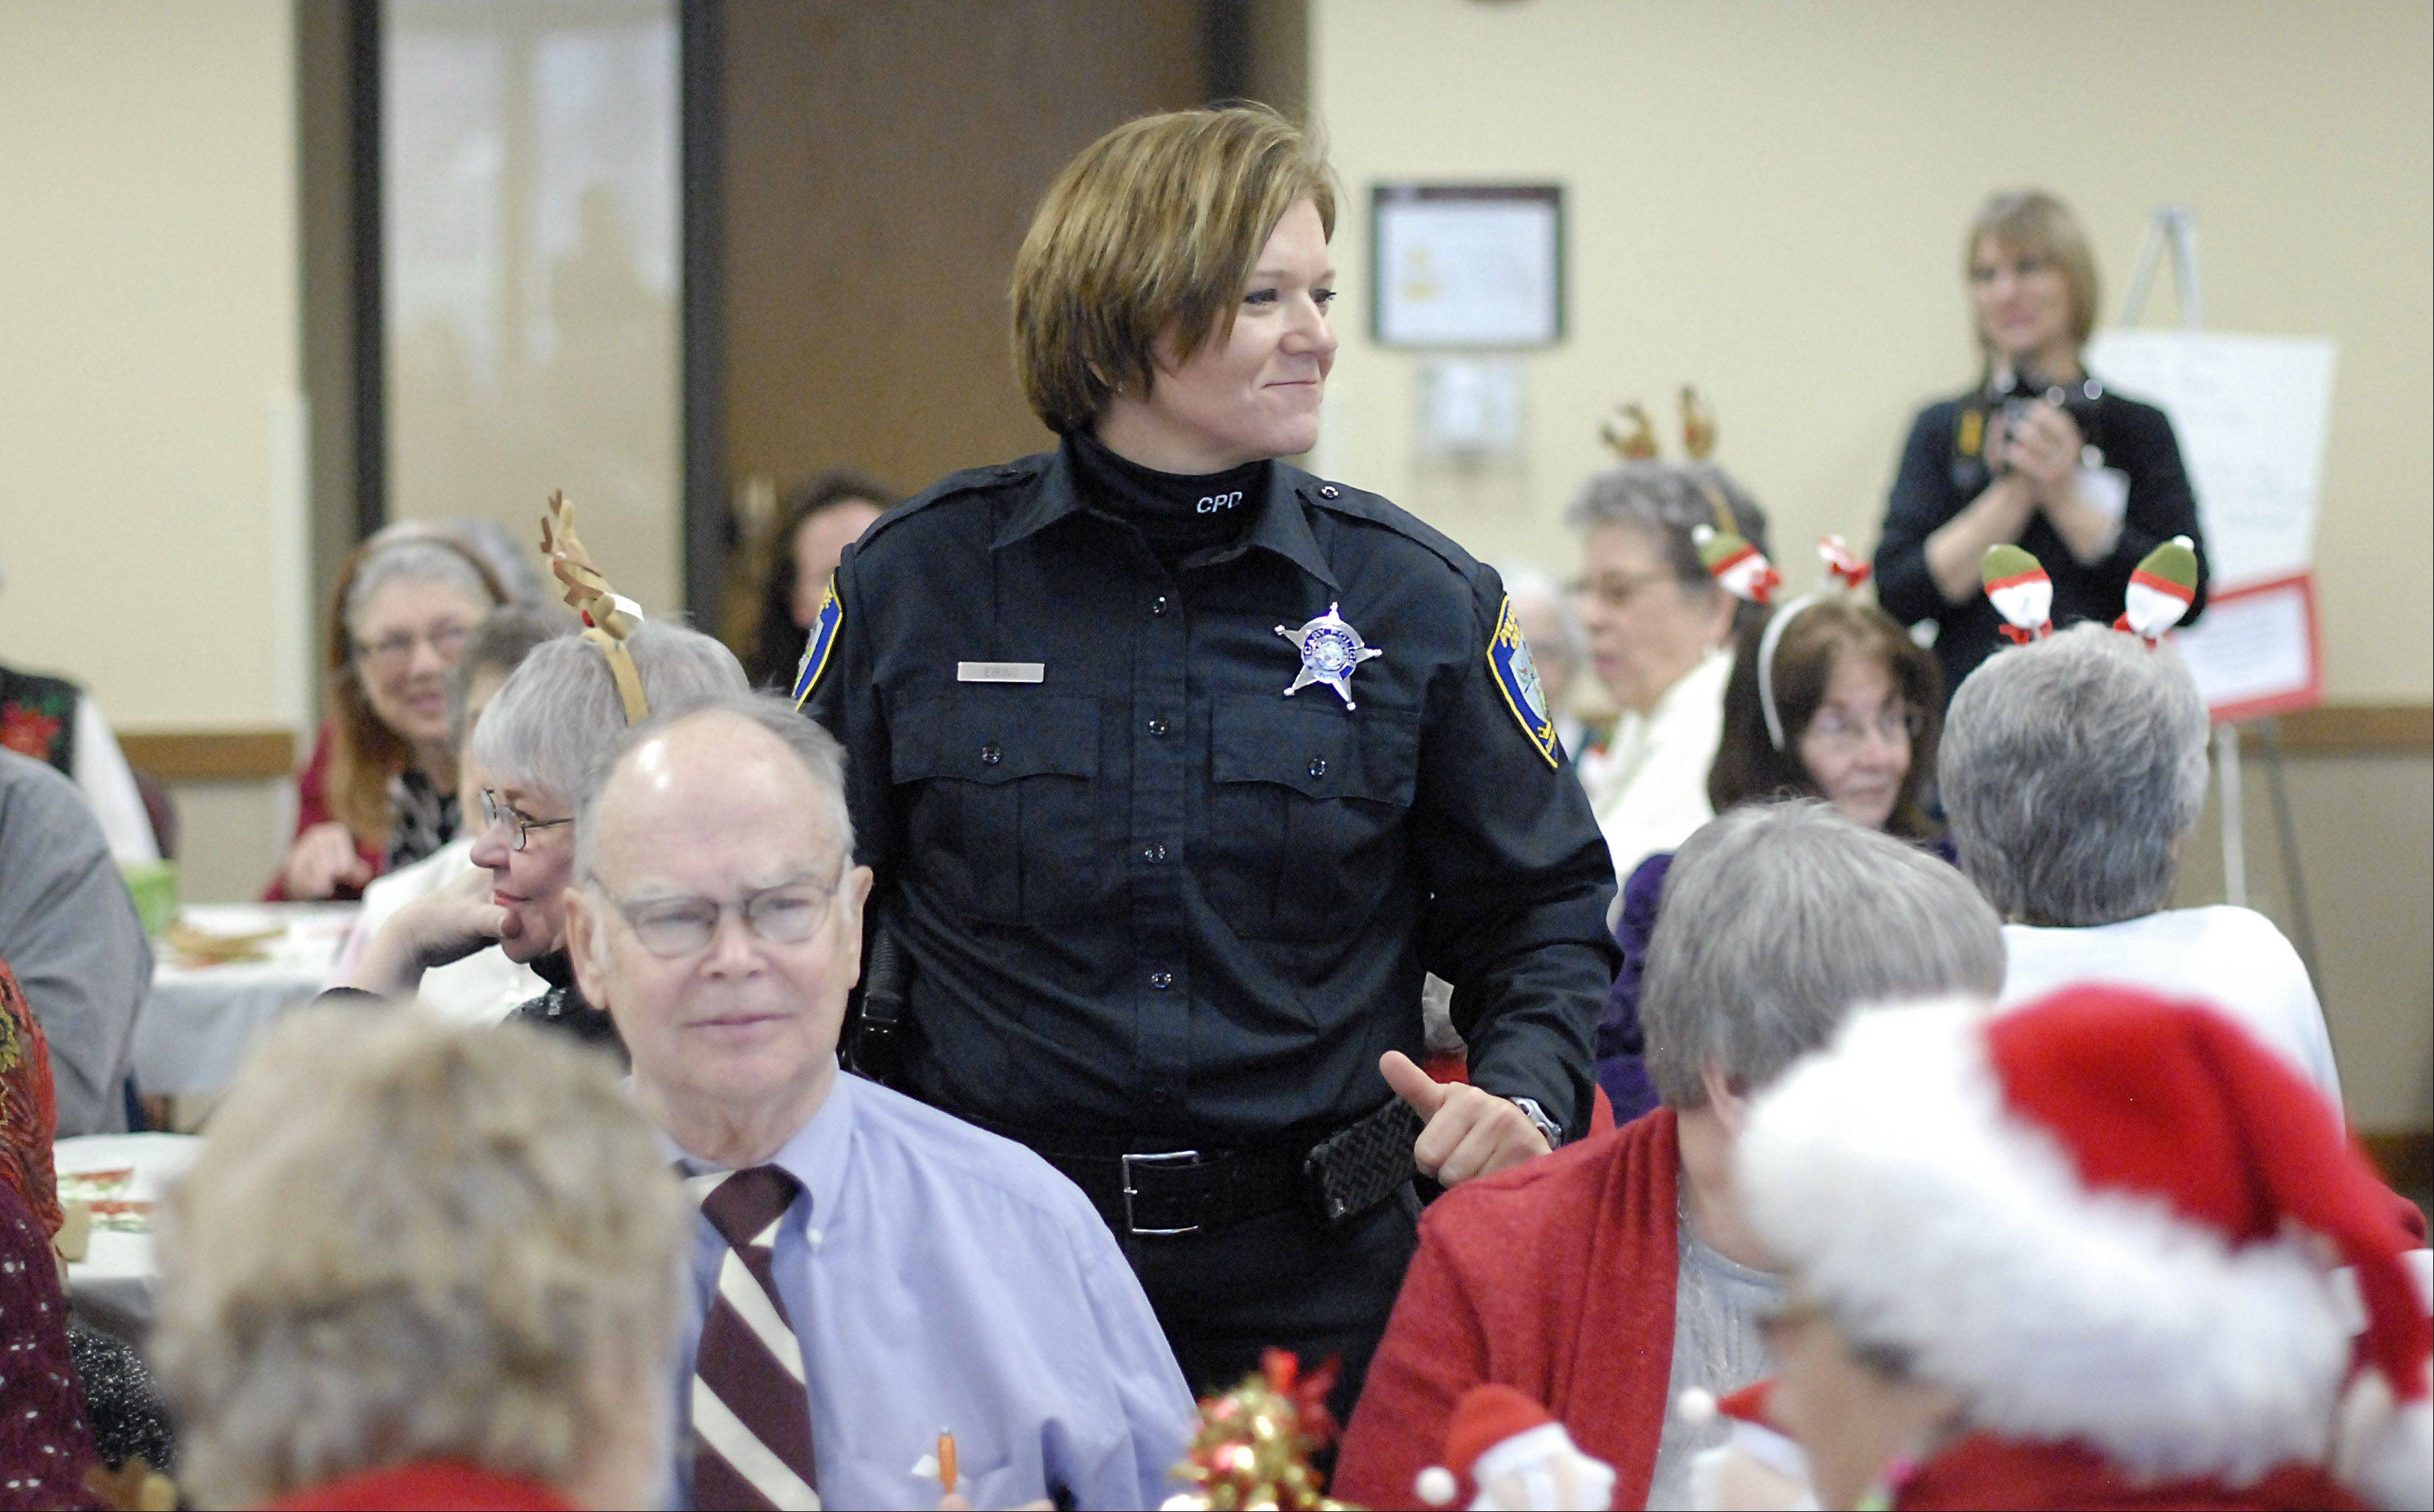 Cary police officer Kathy Eiring makes her rounds socializing with seniors during the Kraus Senior Center's Christmas party at the Community Center in Cary on Dec. 14. Eiring has been working with the senior community for eight years and was certified as an ESO four years ago.